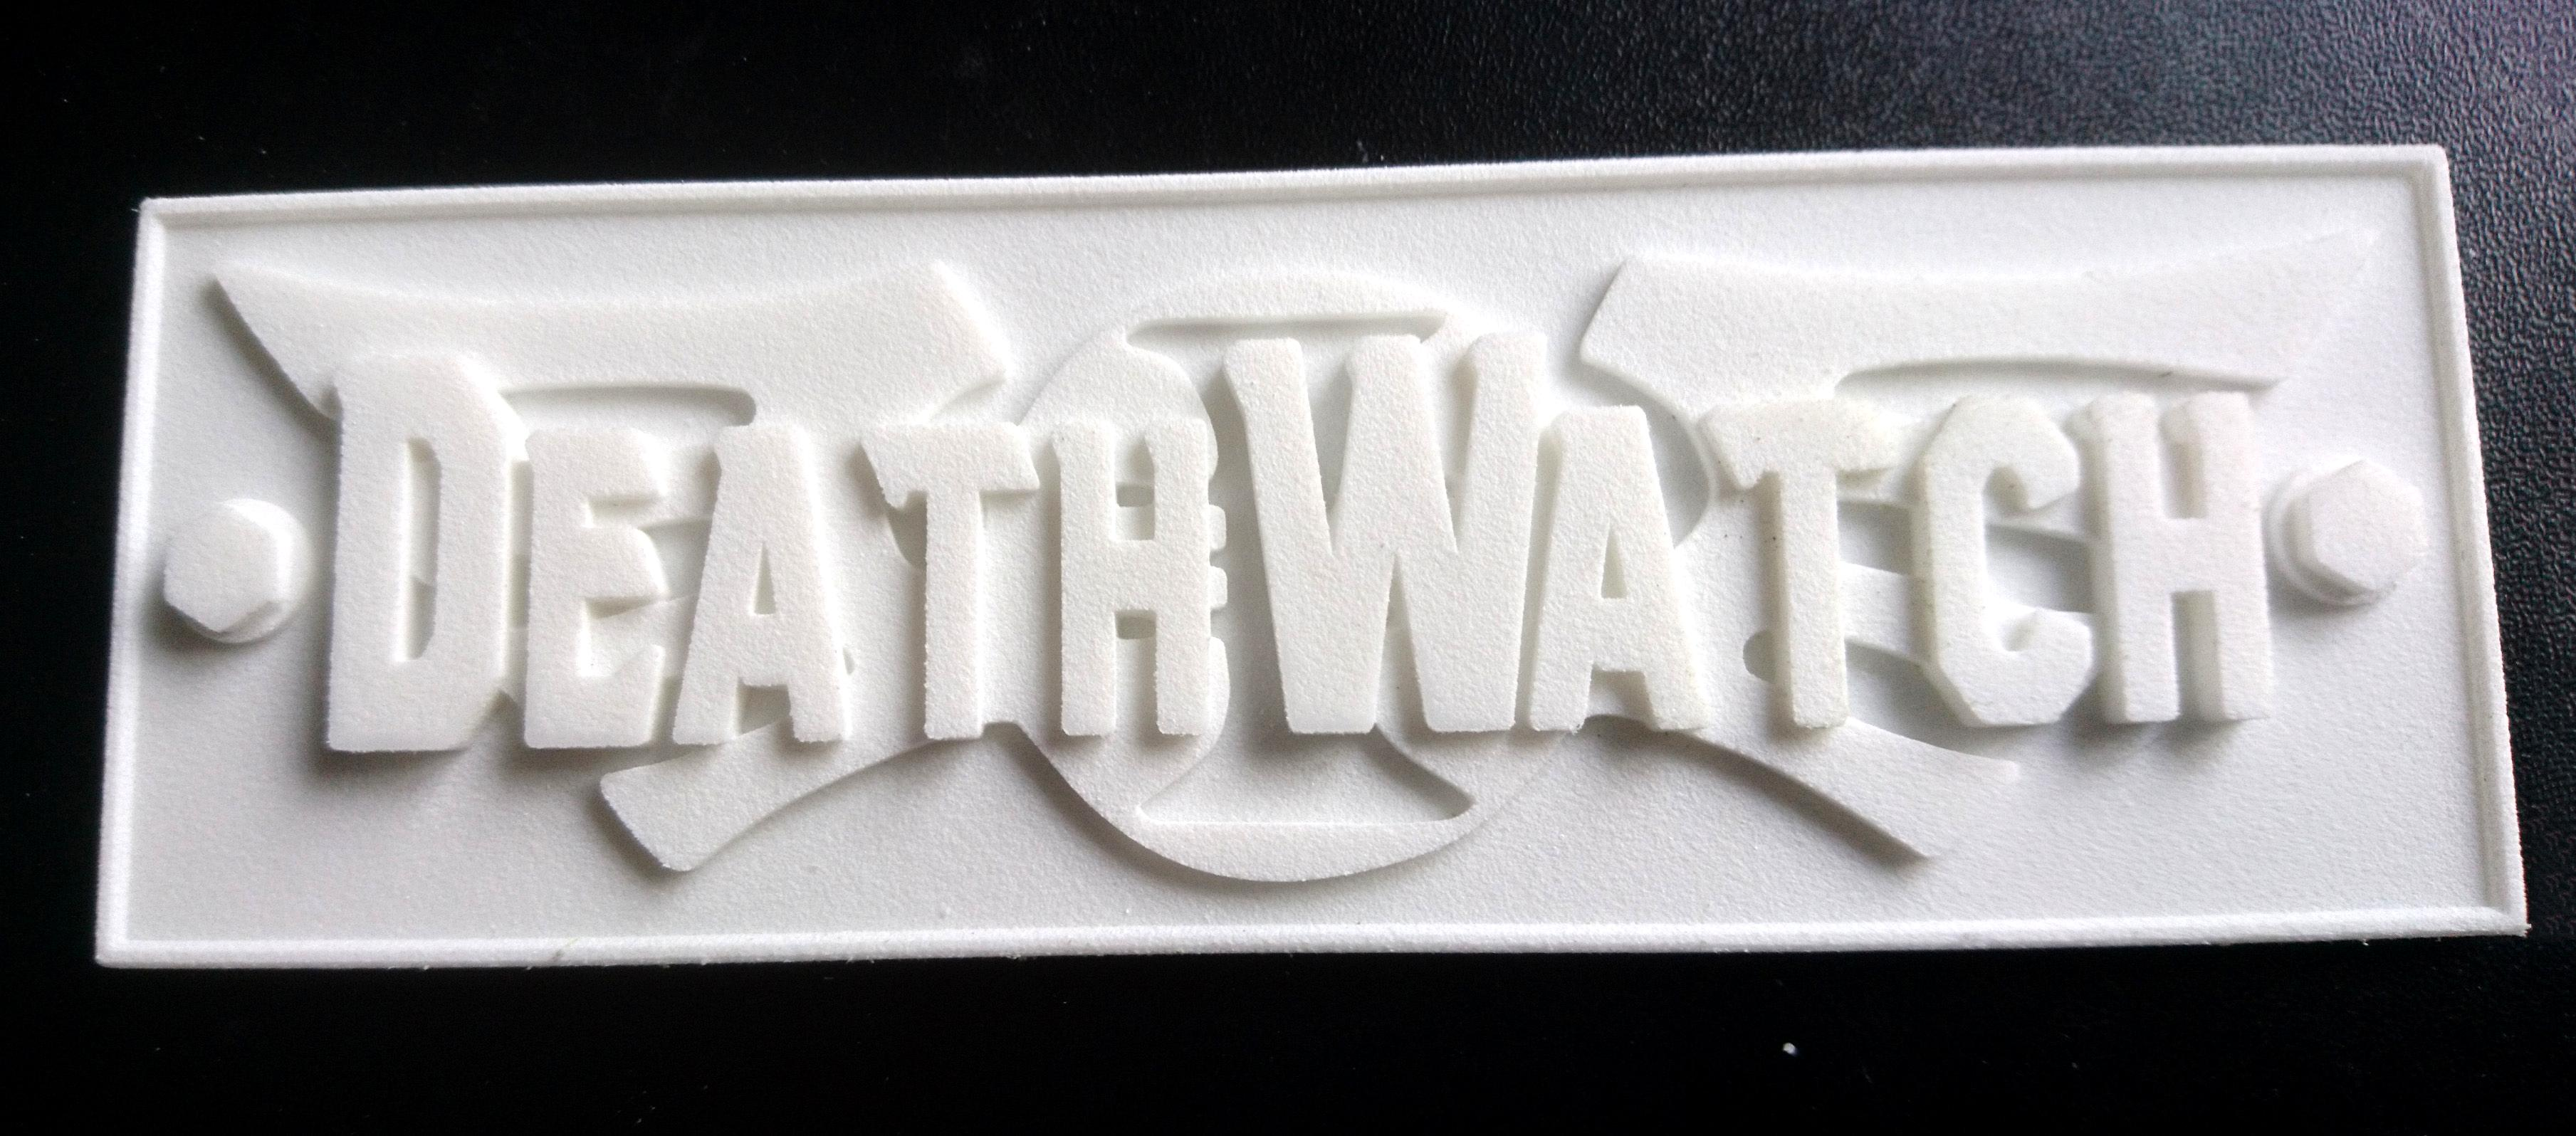 Deathwatch name plate